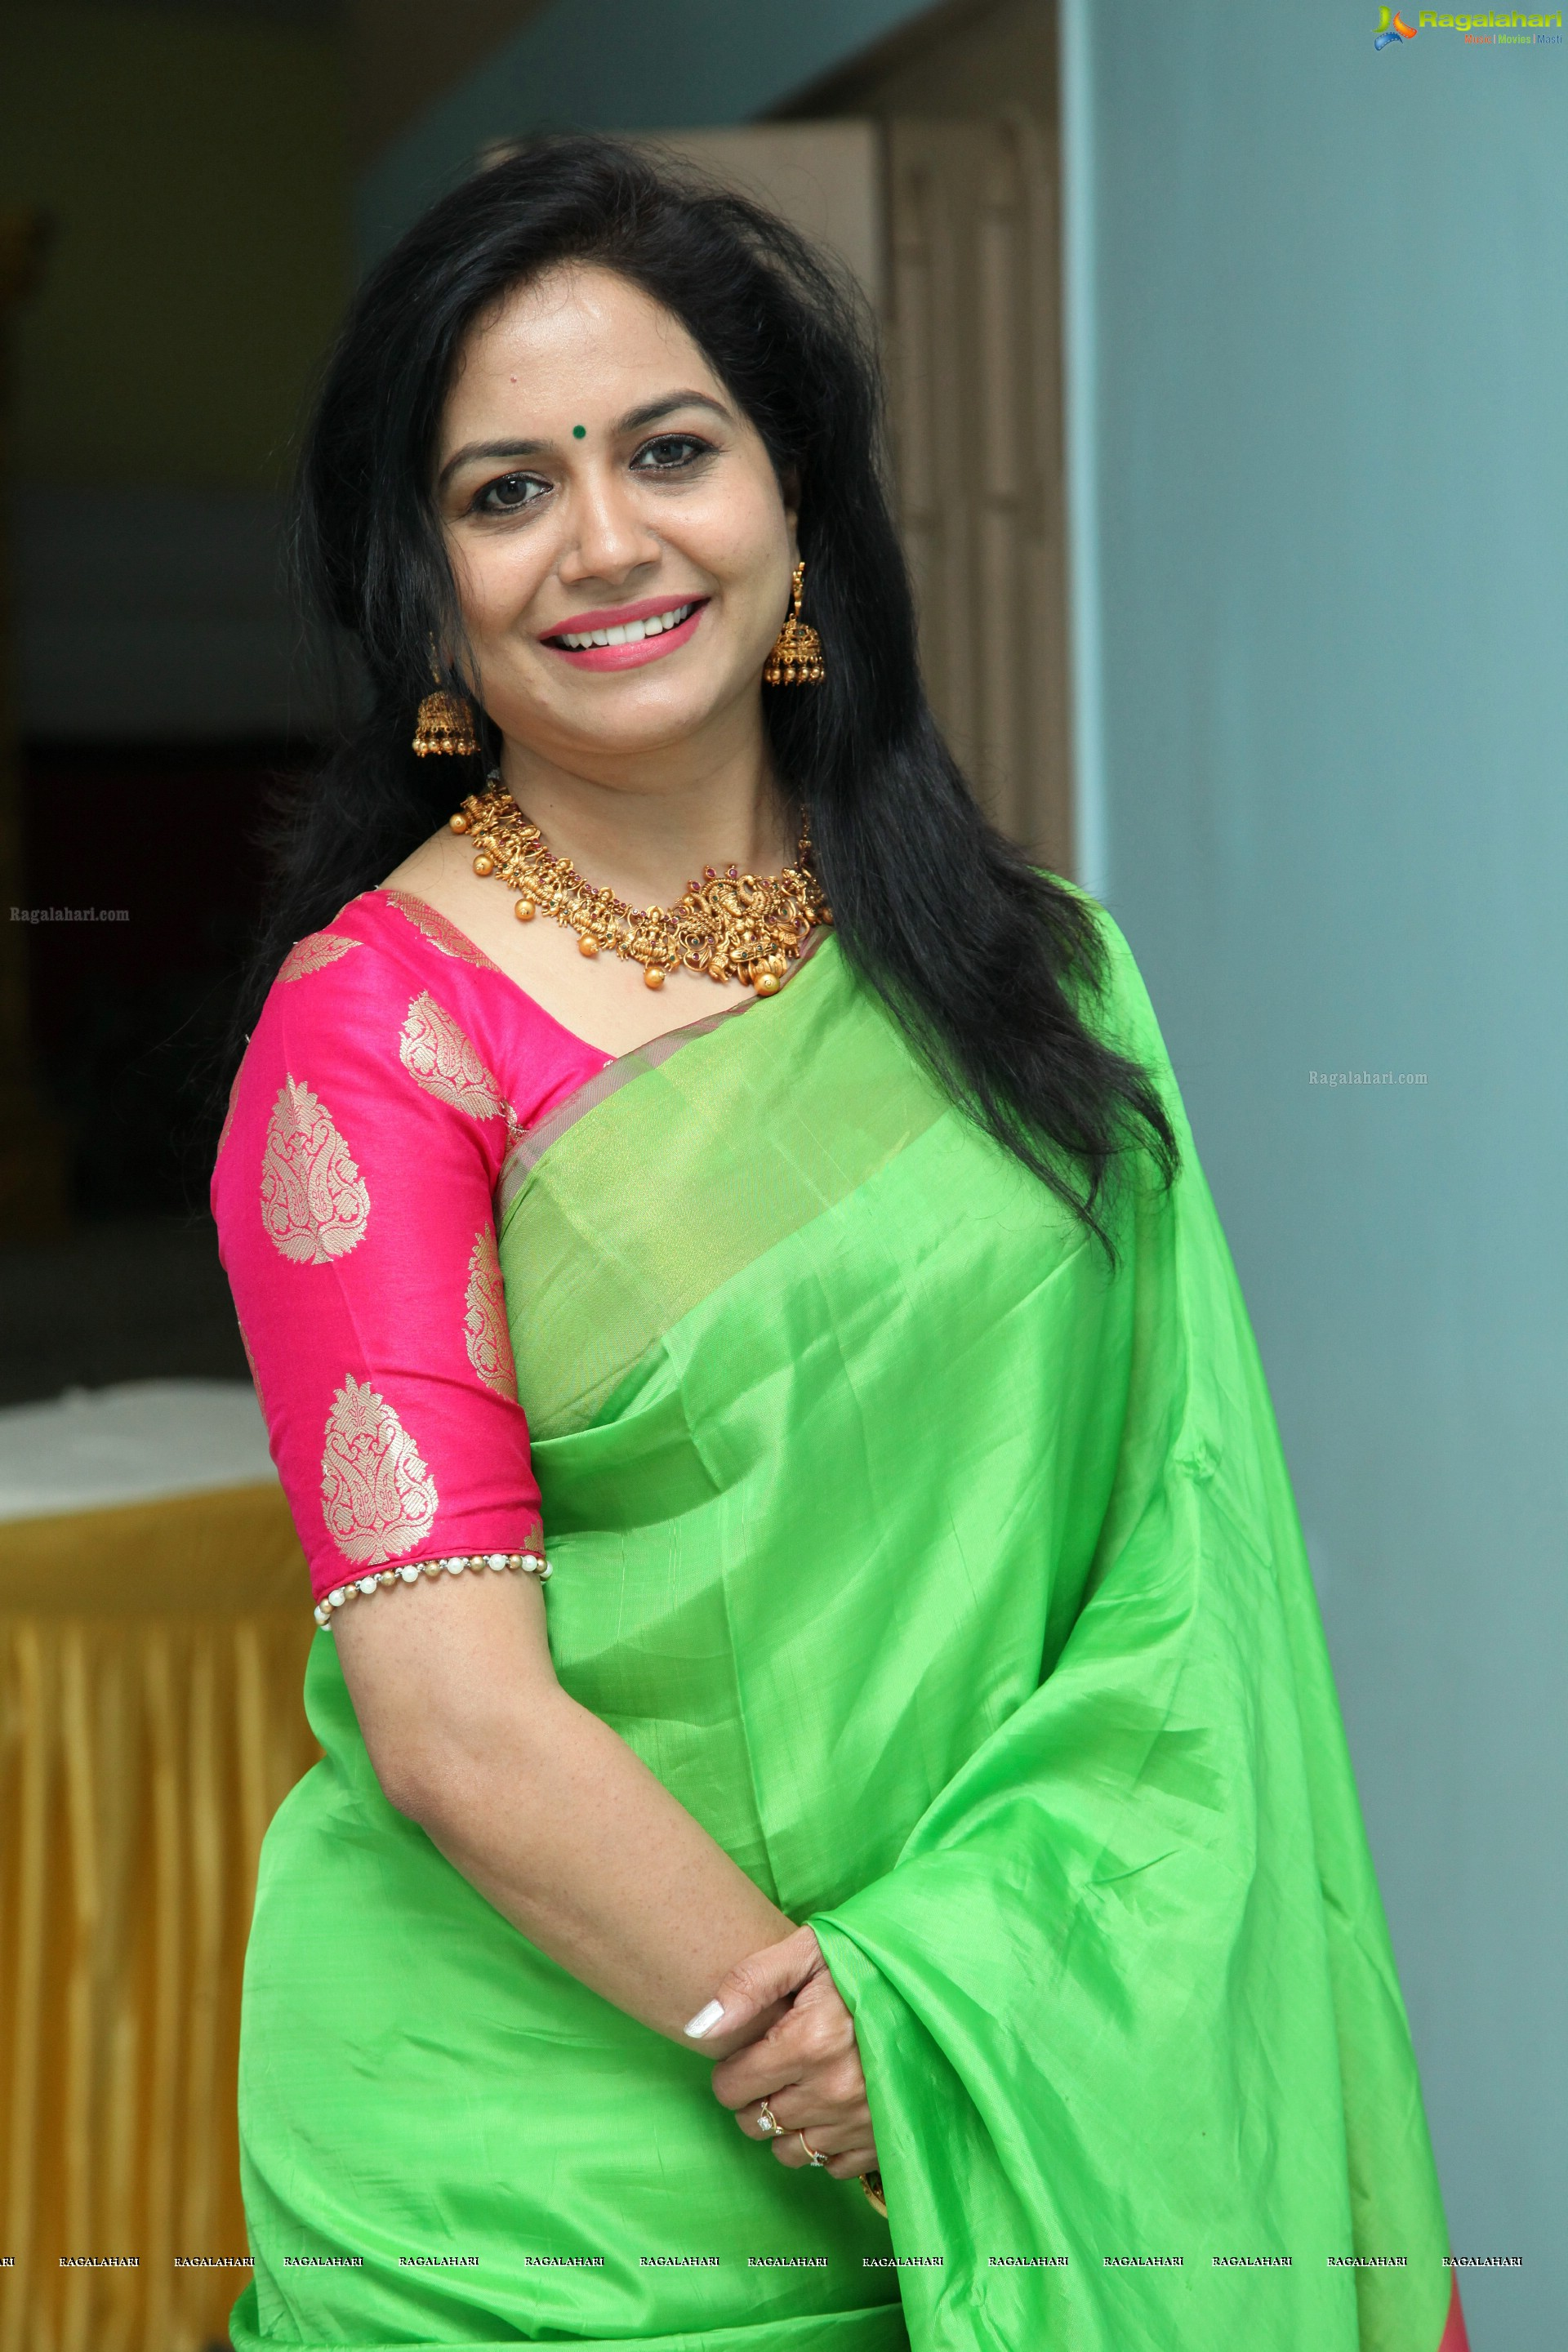 sunitha at spb live concert hyderabad image 5 tollywood